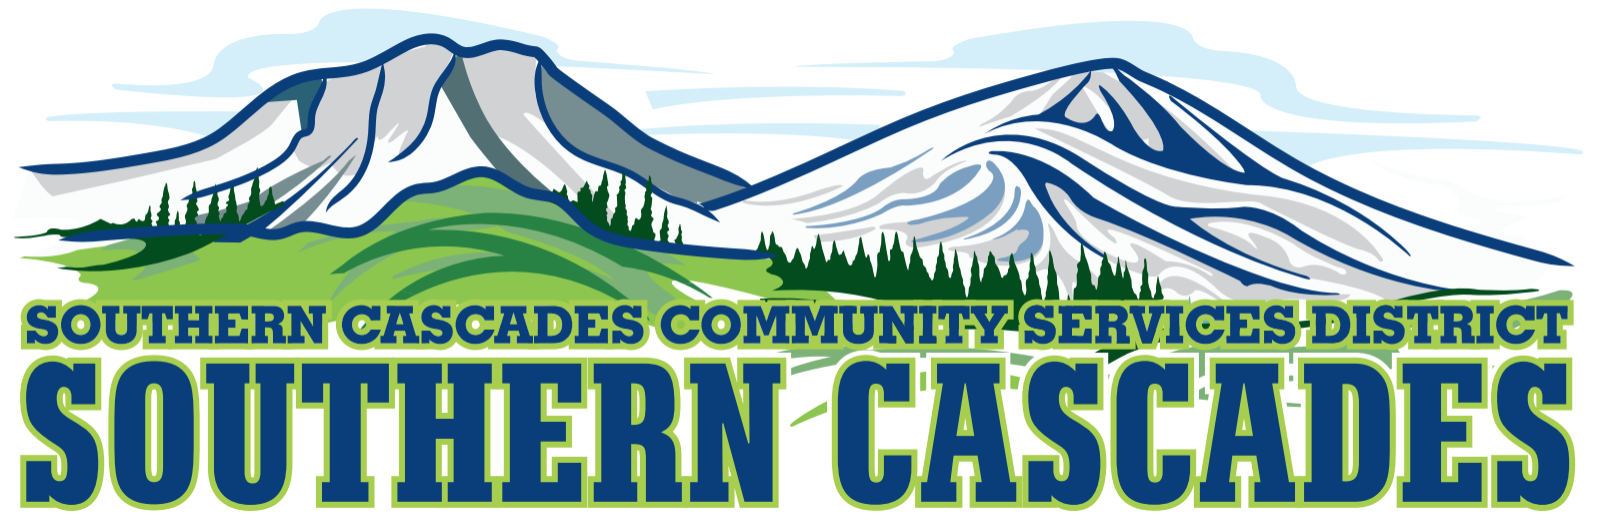 Southern Cascades Community Services District